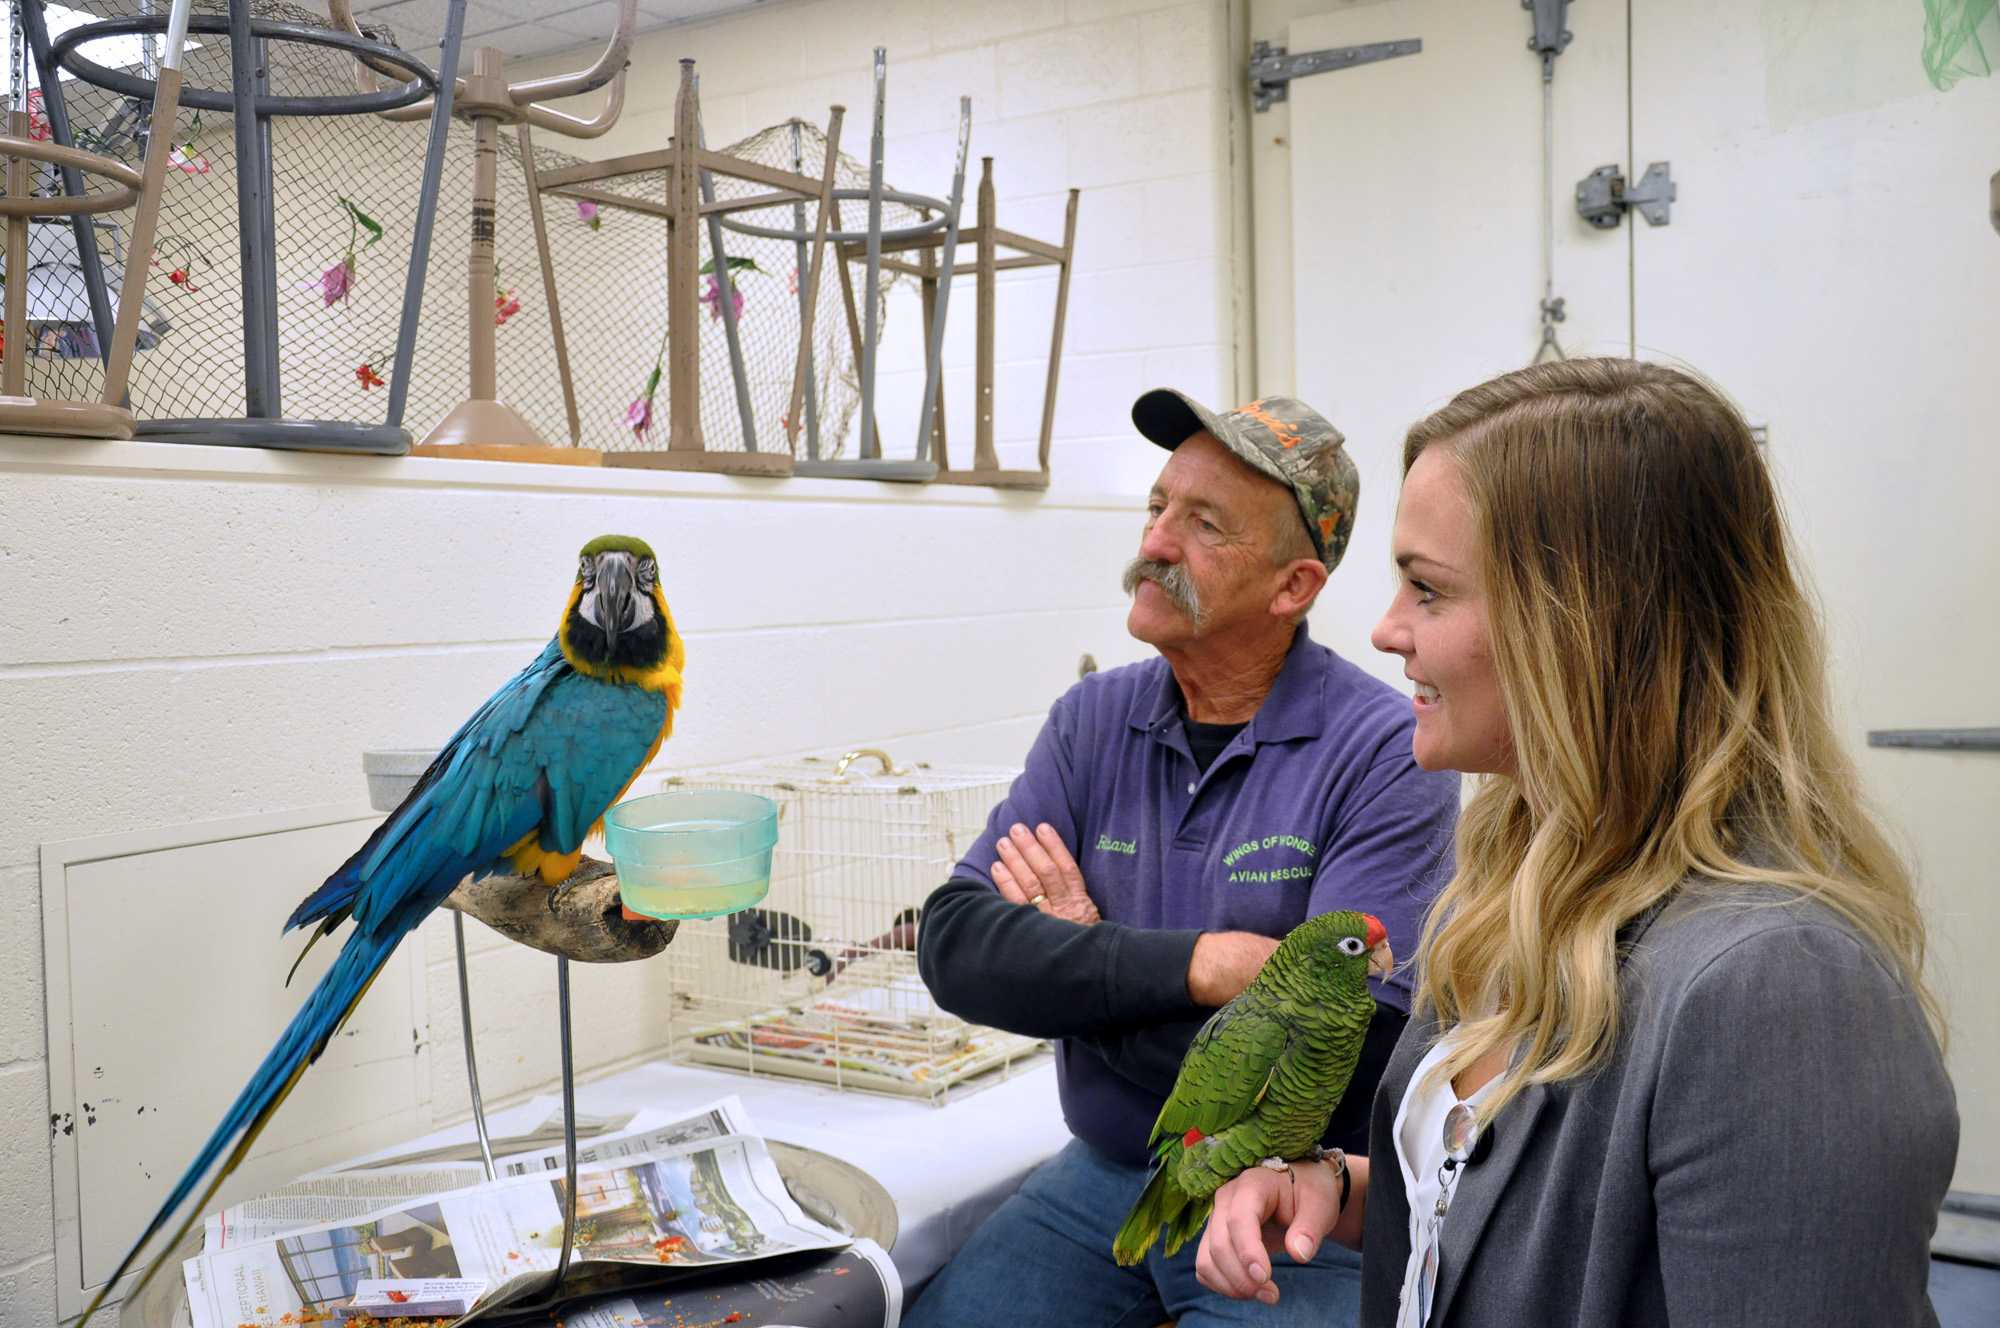 Amanda Radek and Richard Hungerford, members of Wings of Wonder Aviation Rescue, look at one the parrots at the Vet Med Open House at the Vet Med Building on October 4, 2015.